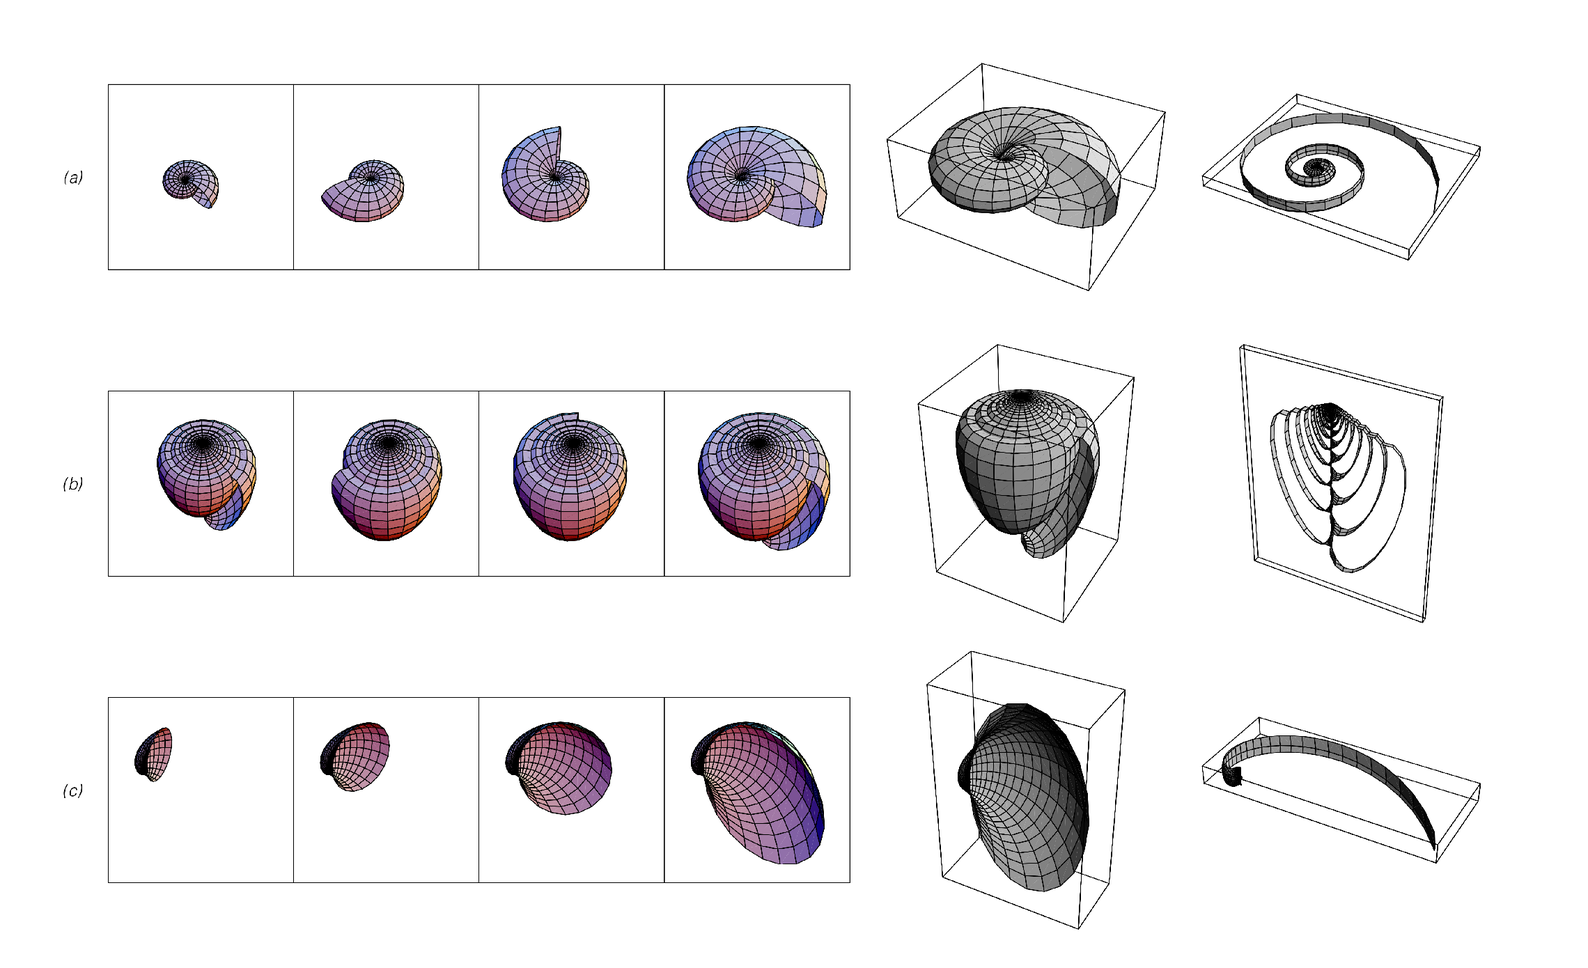 Model for the growth of mollusc shells